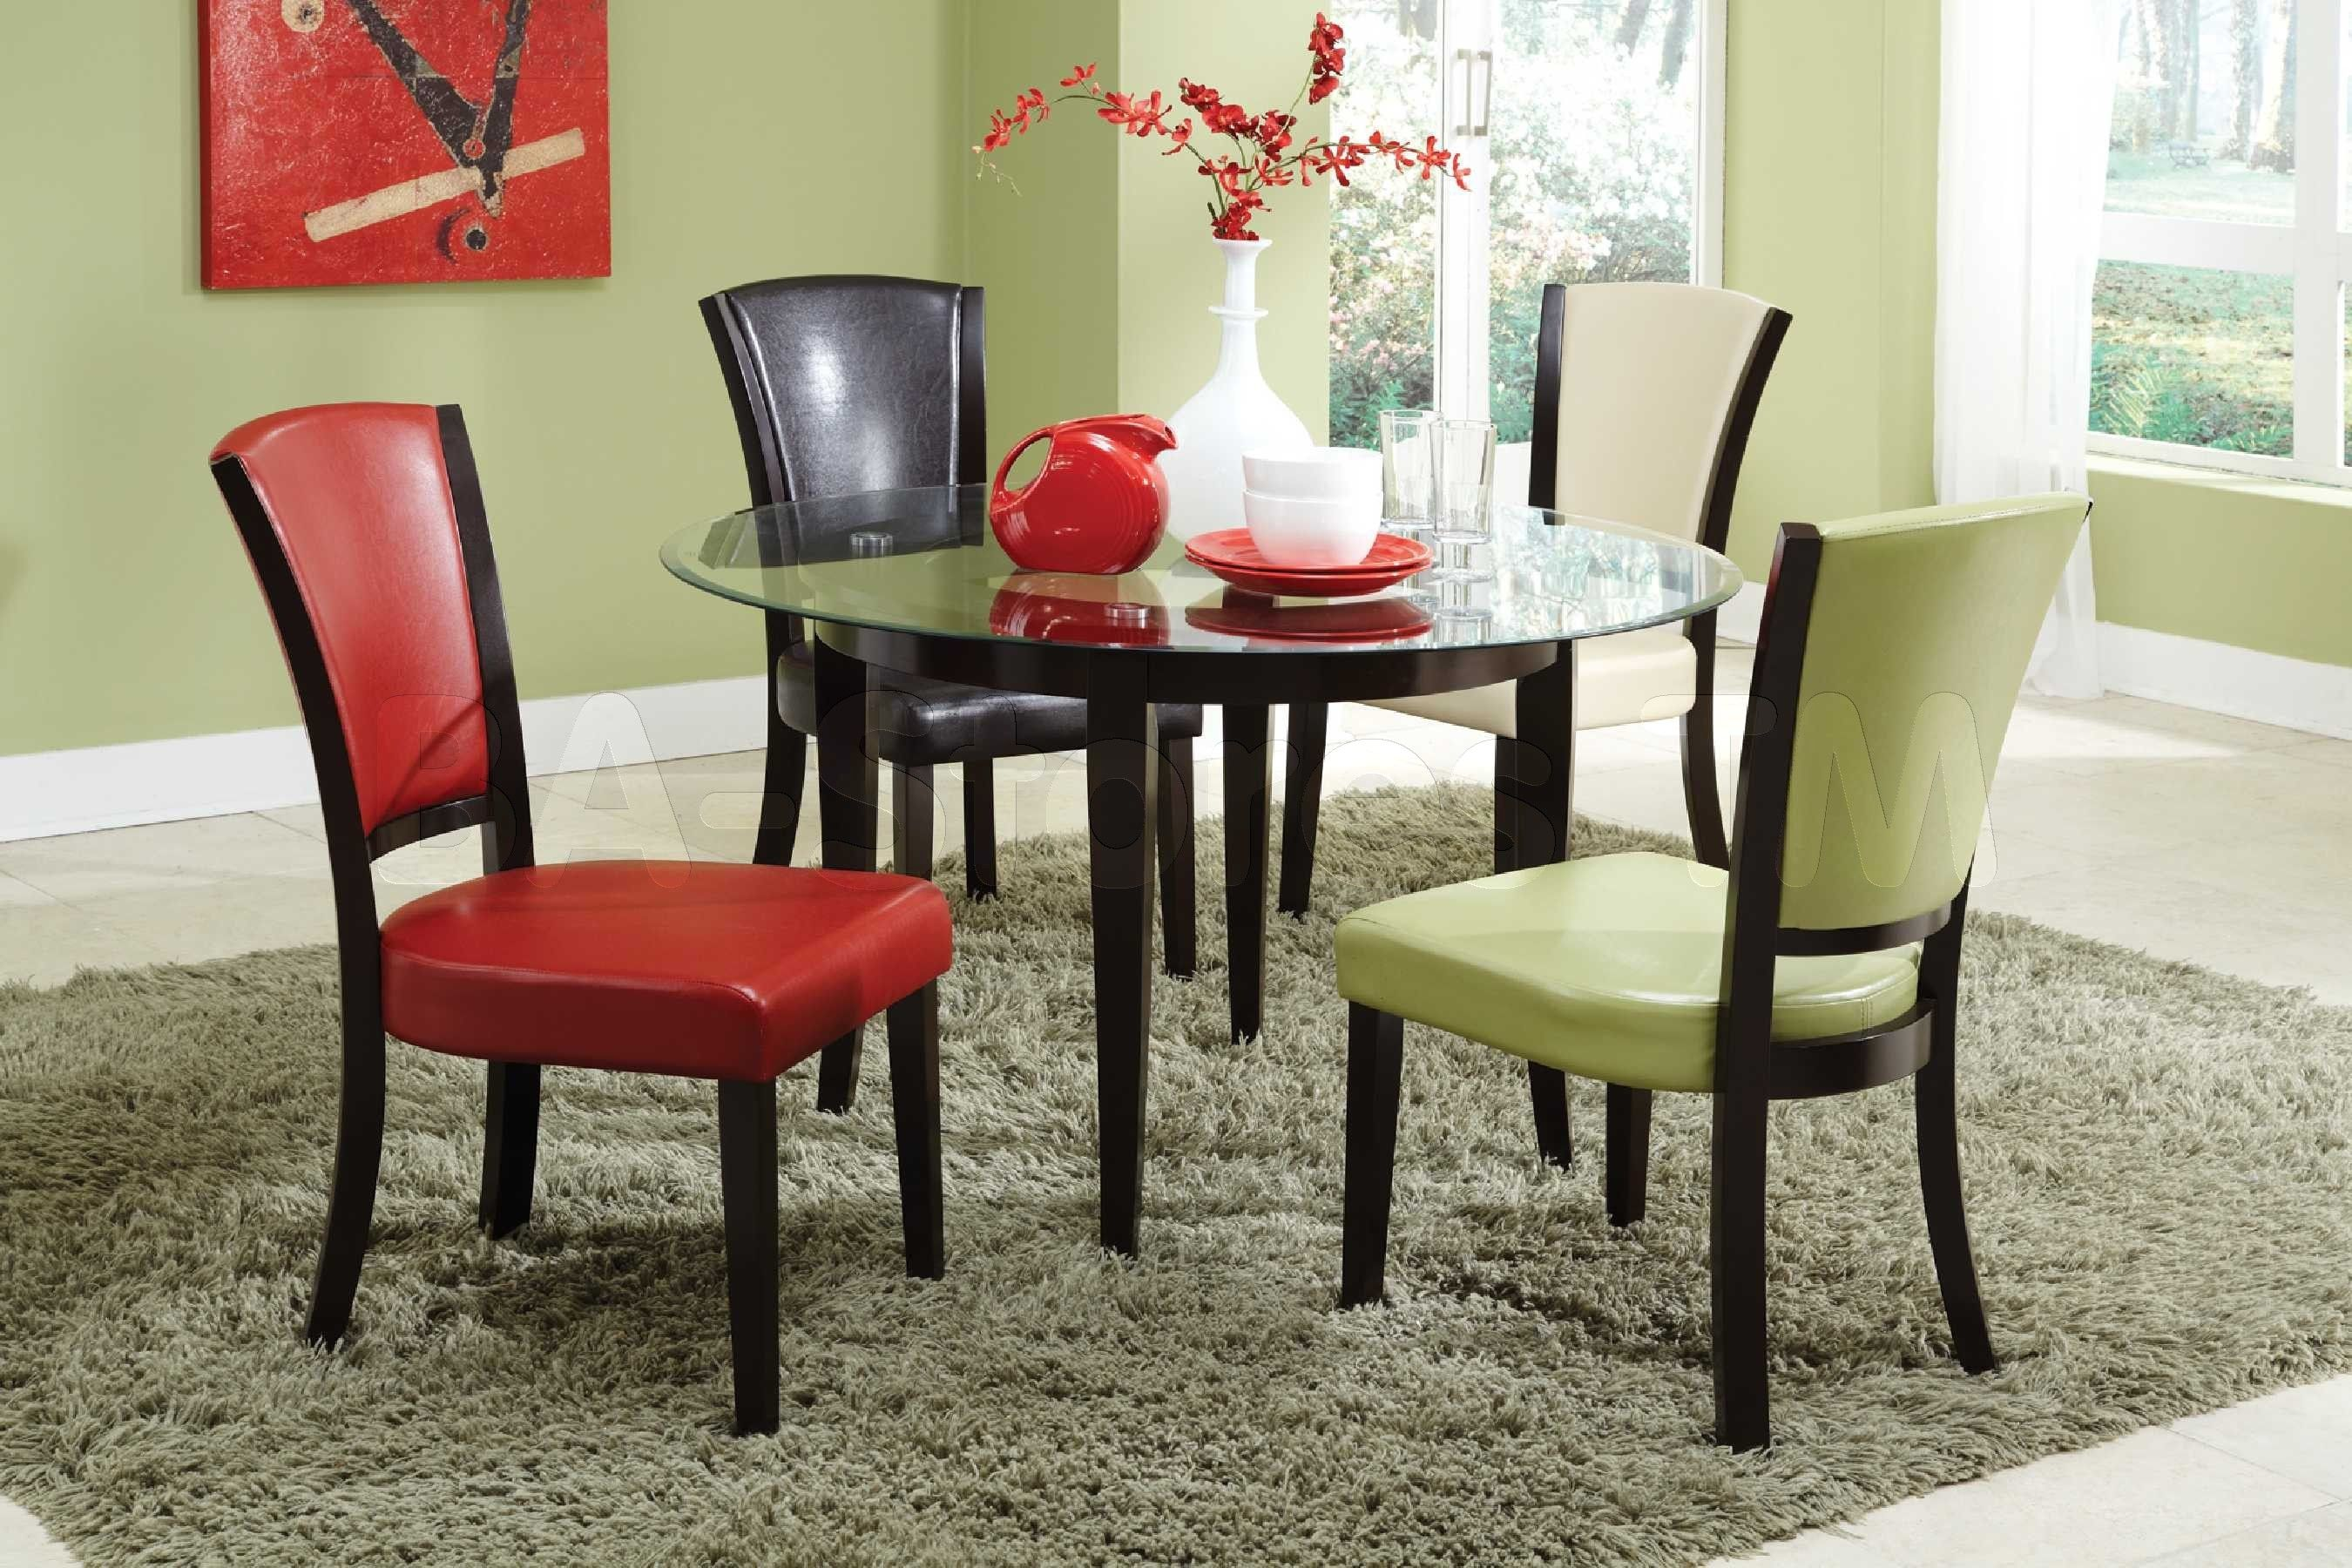 5 pc dining set four vinyl chairs and glass table